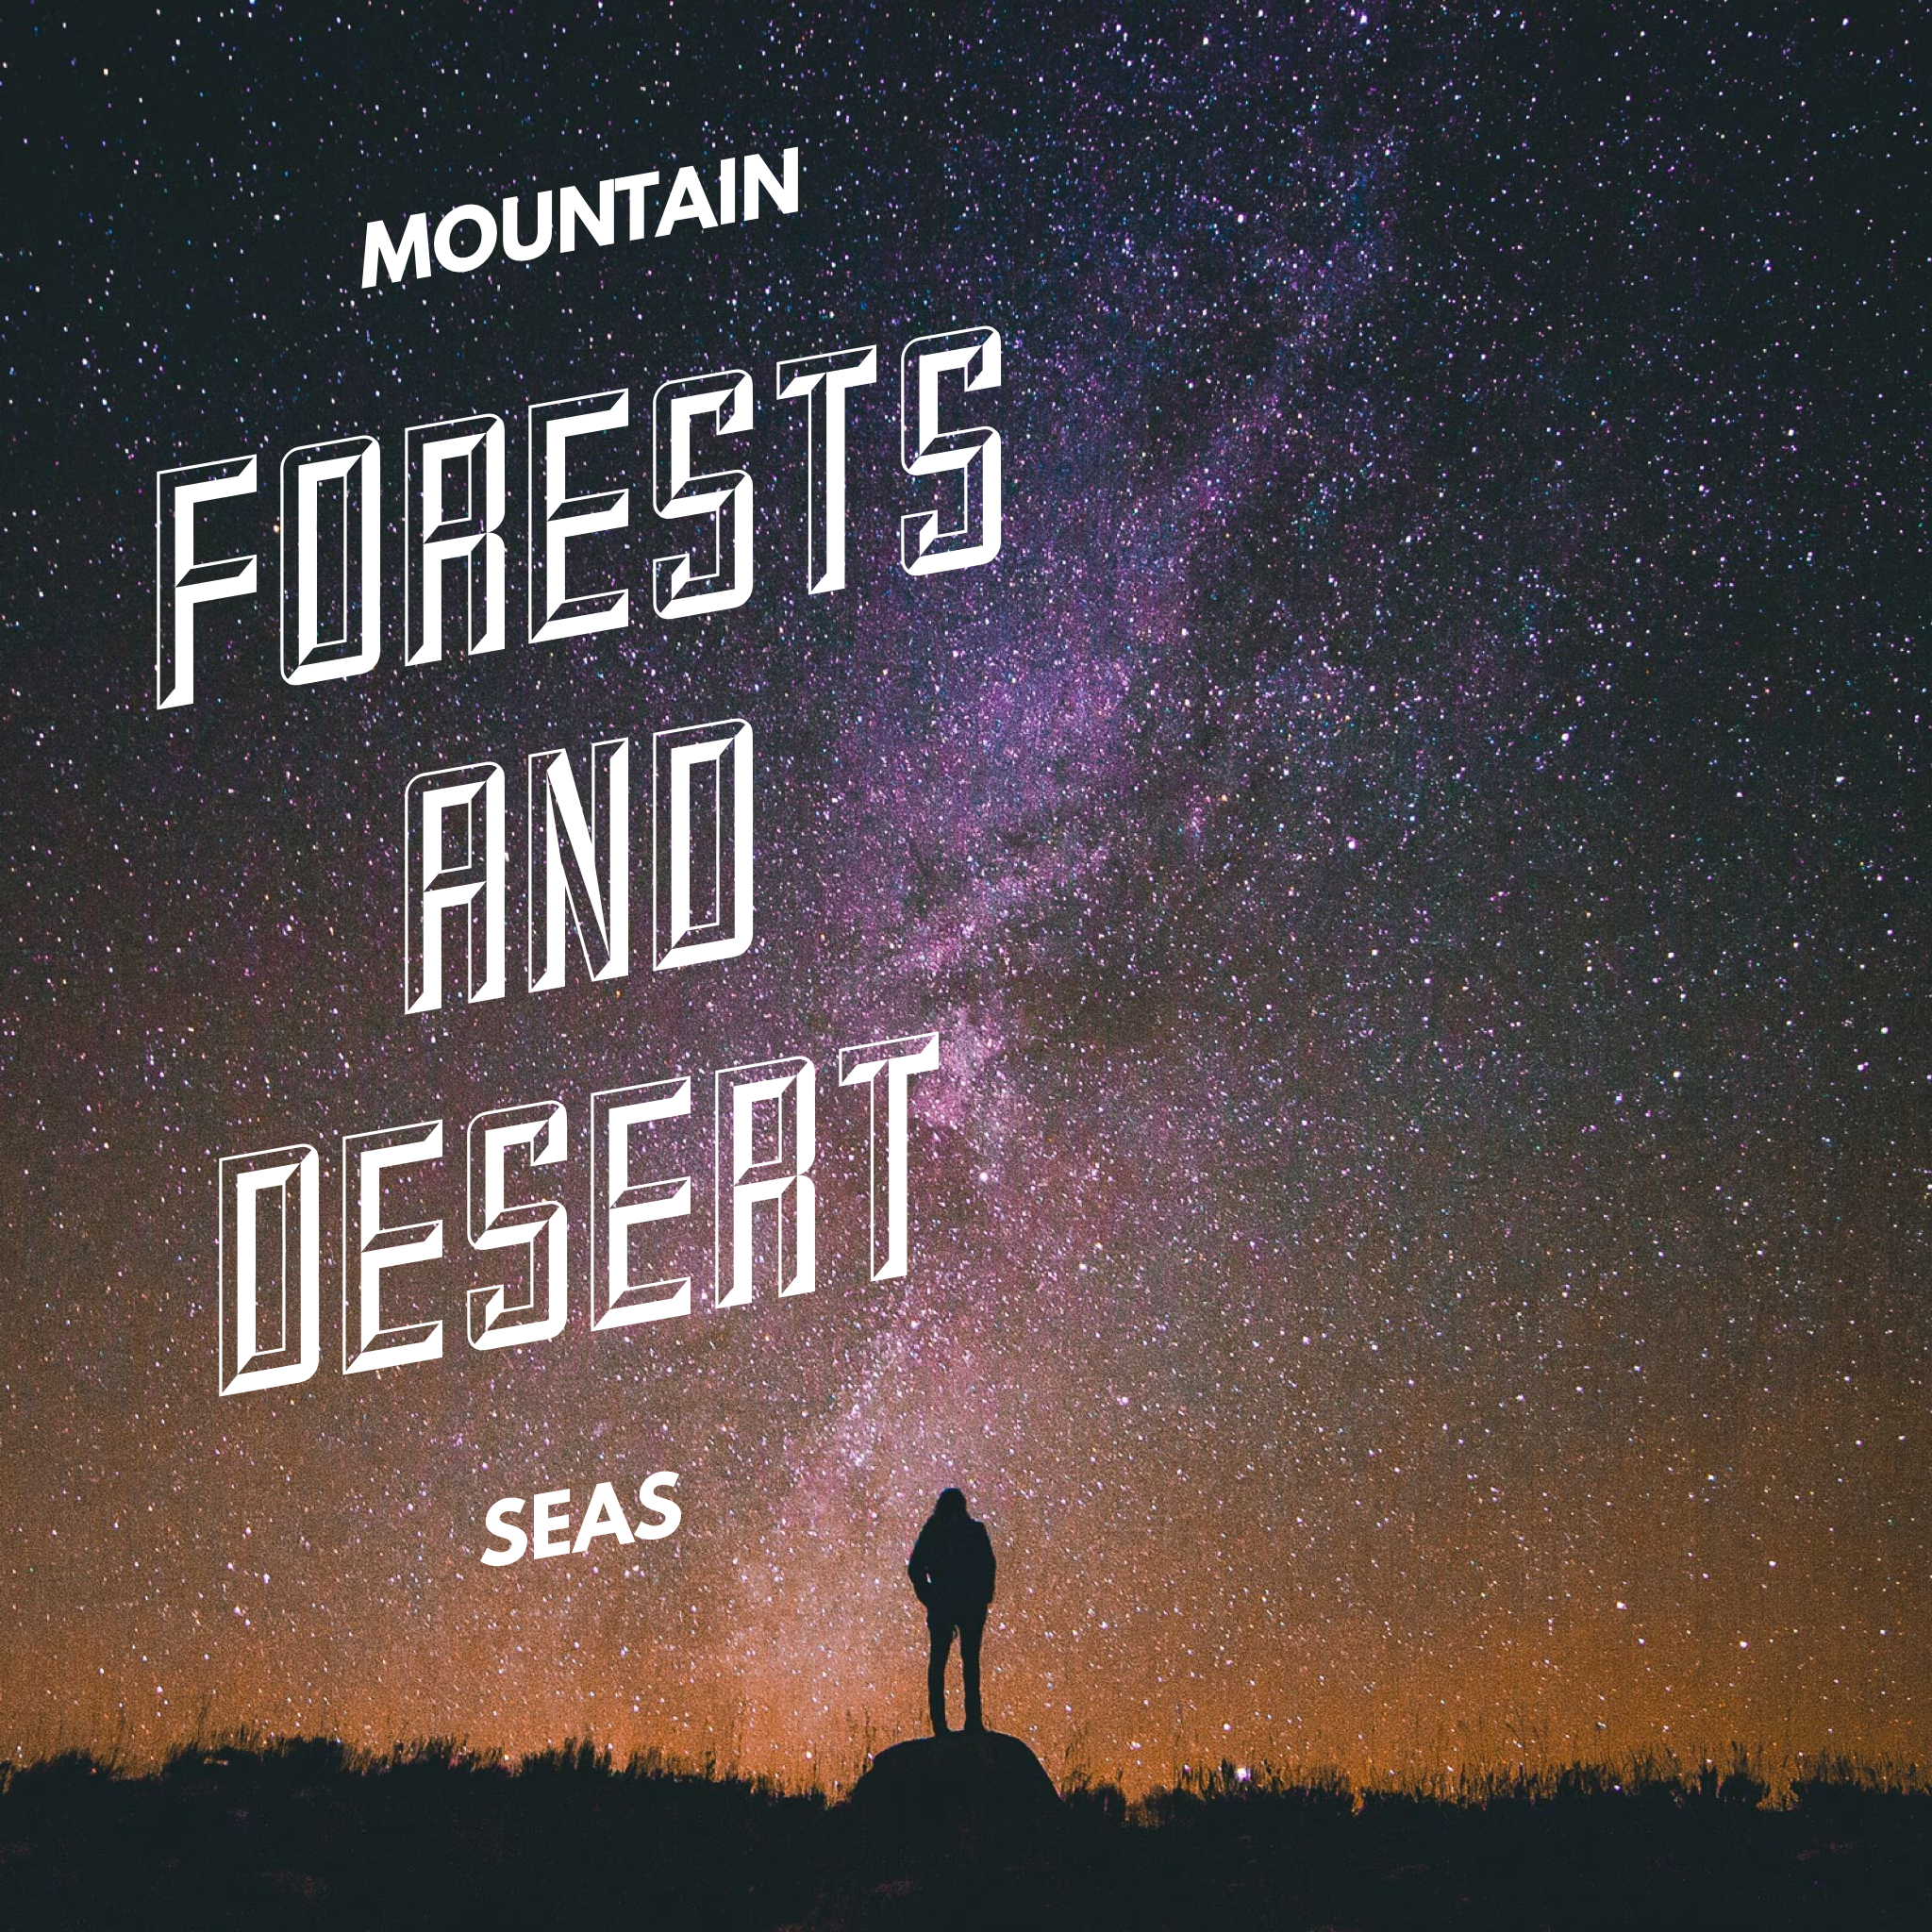 Forest Mountains and Desert Seas